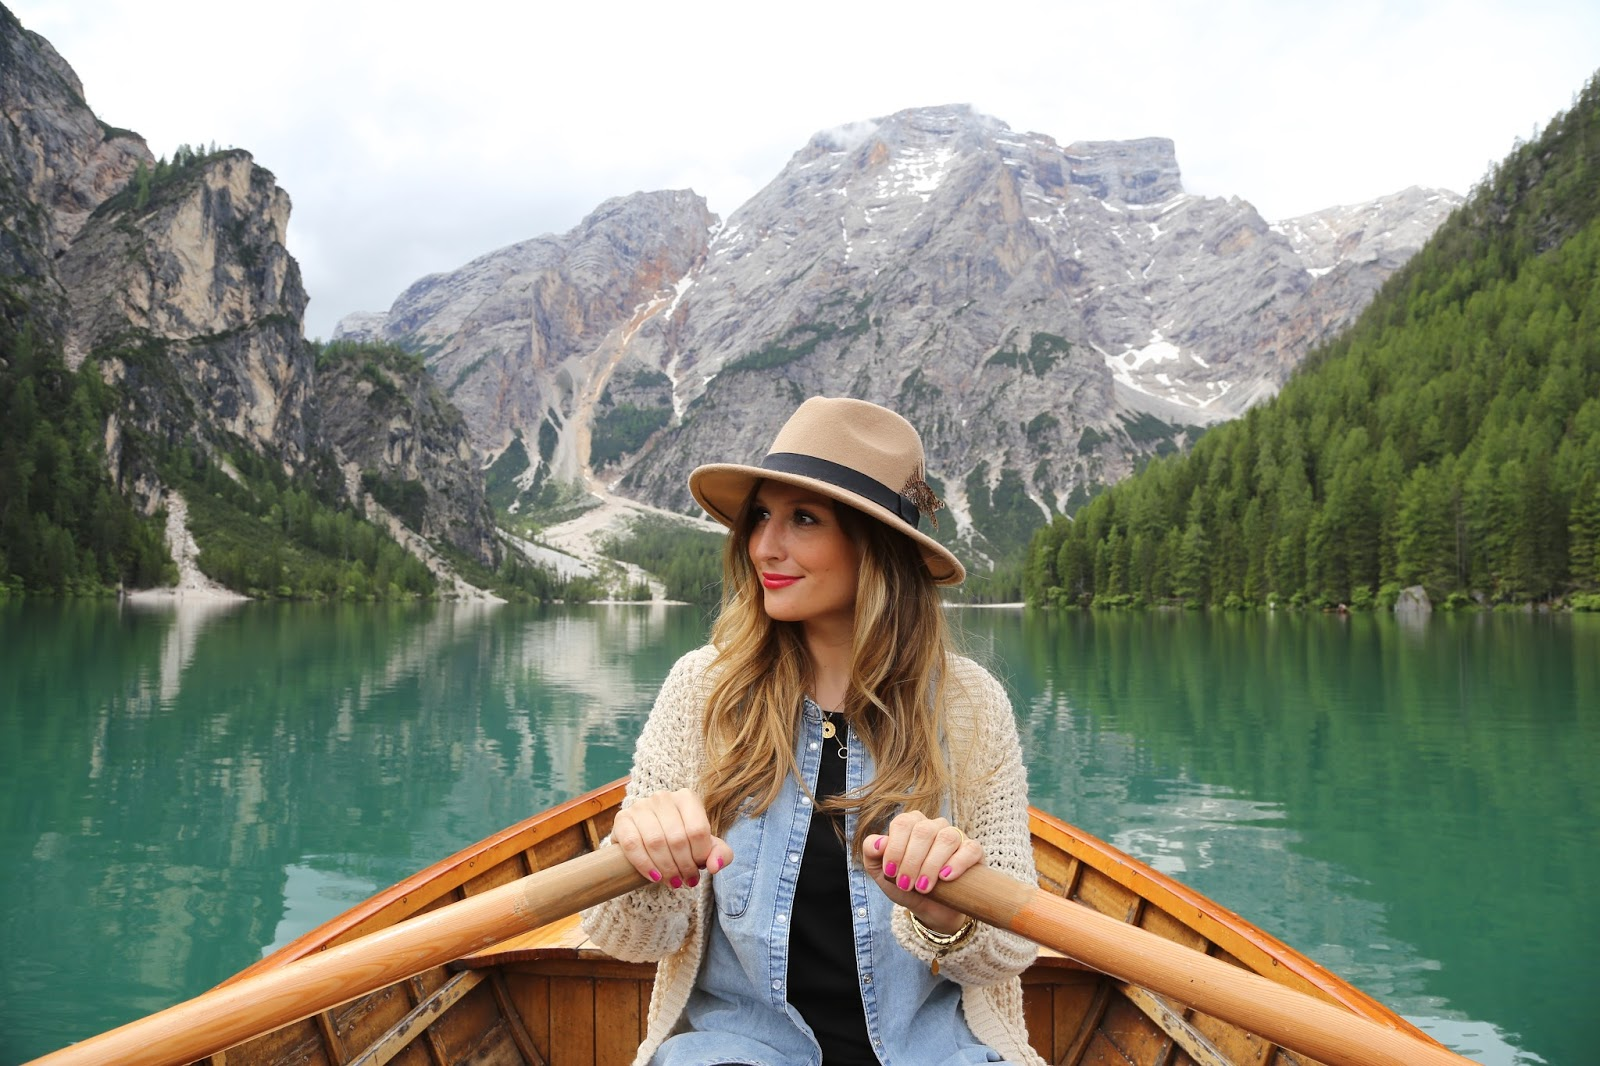 GAASTRA - Fashionstylebyjohanna - Südtirol - Fedora Hut - Blogger - Austria - Outdoorblogger - Haglo- Best Mountain Artists - Outdoorblogger